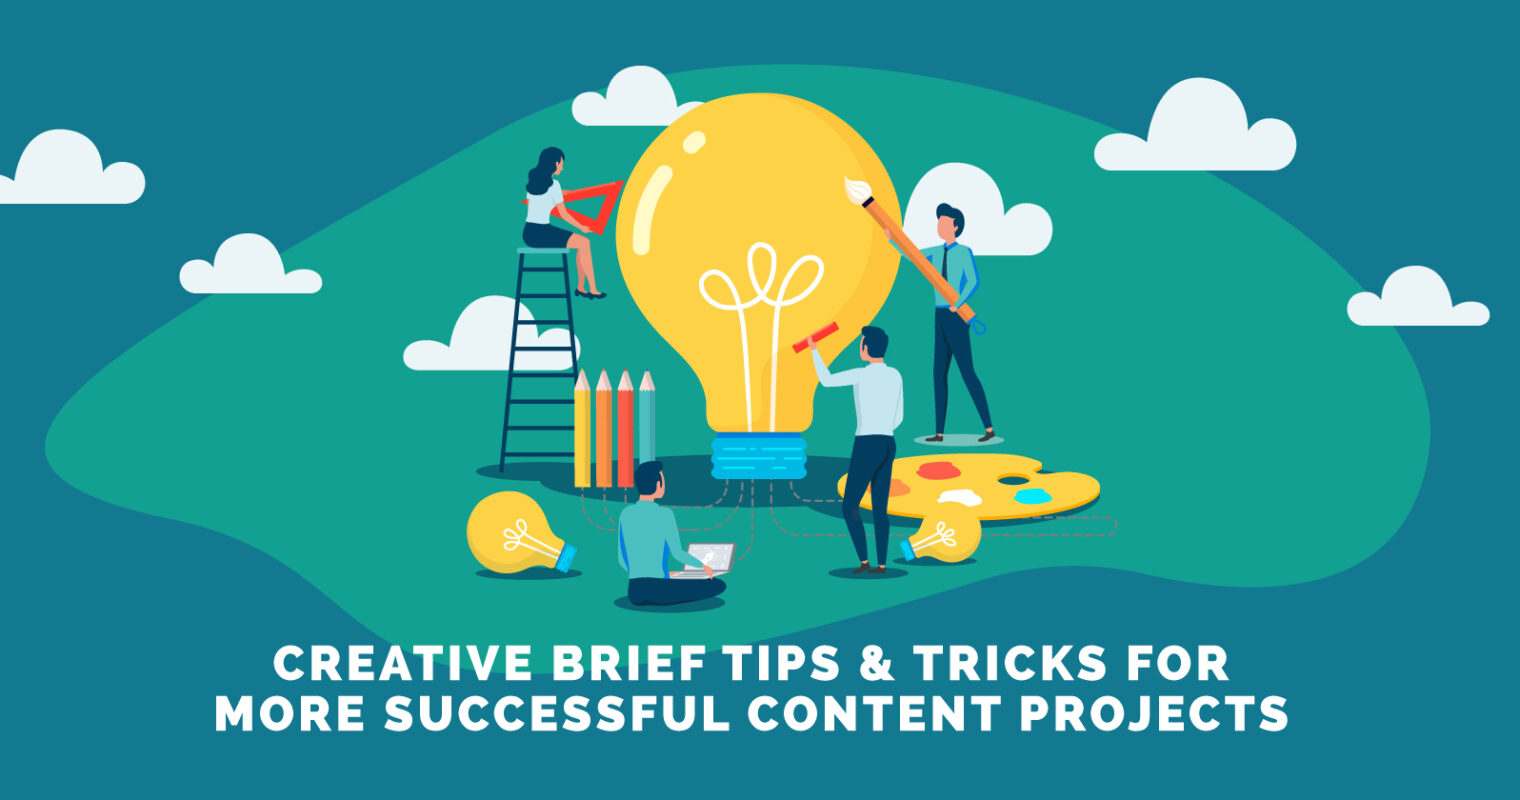 Creative Brief Tips & Tricks for More Successful Content Projects